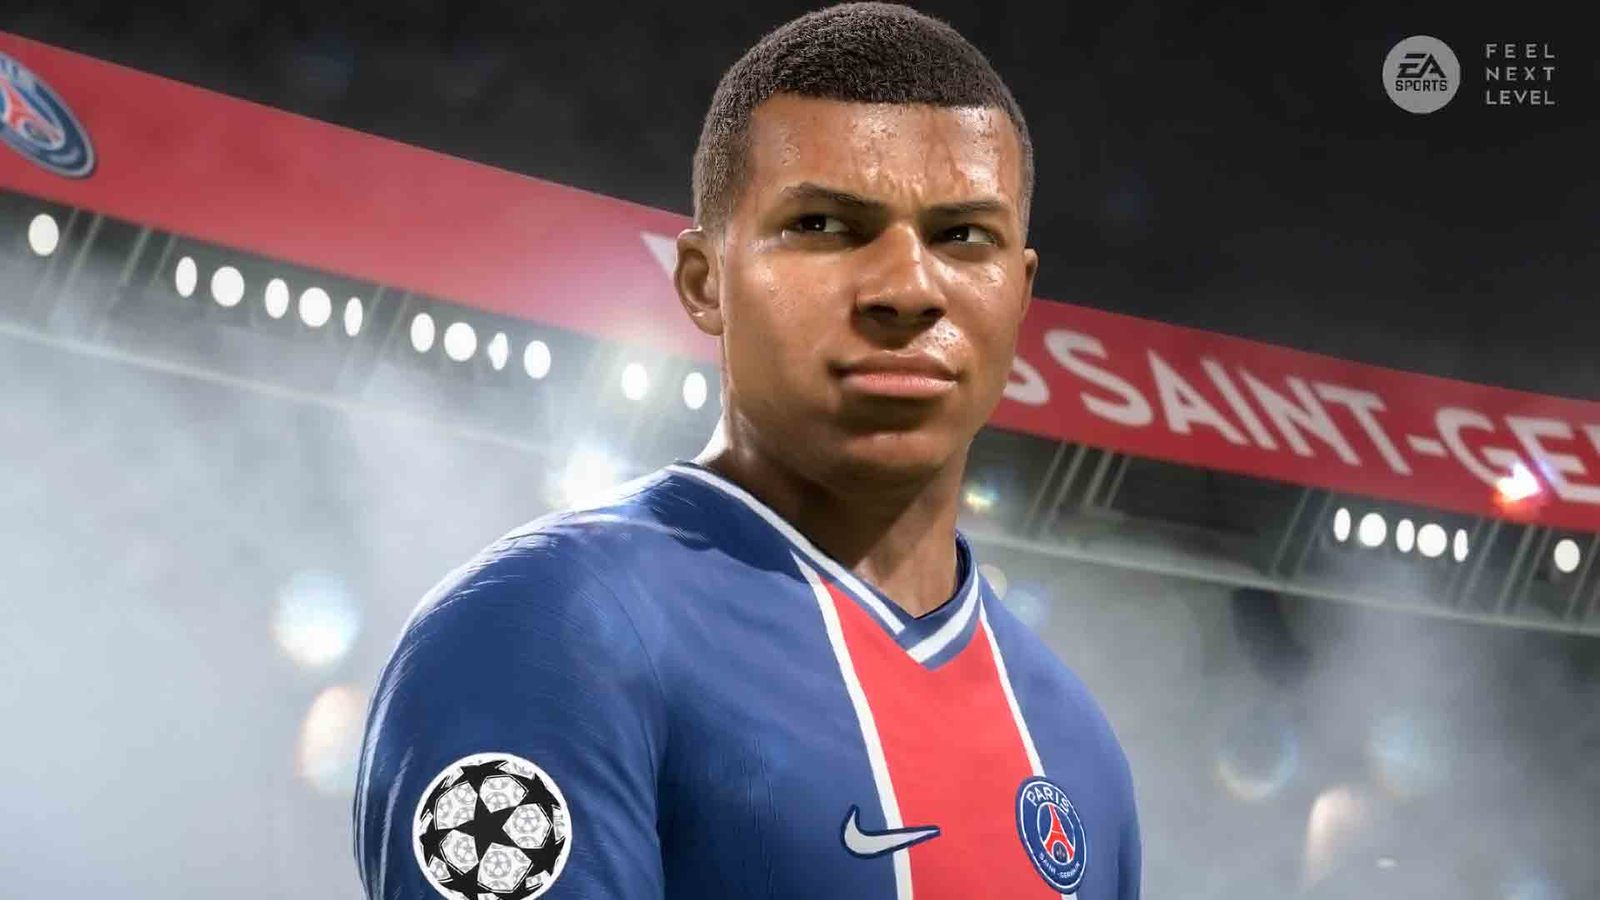 FIFA 21 Next Level Edition - Xbox Series X